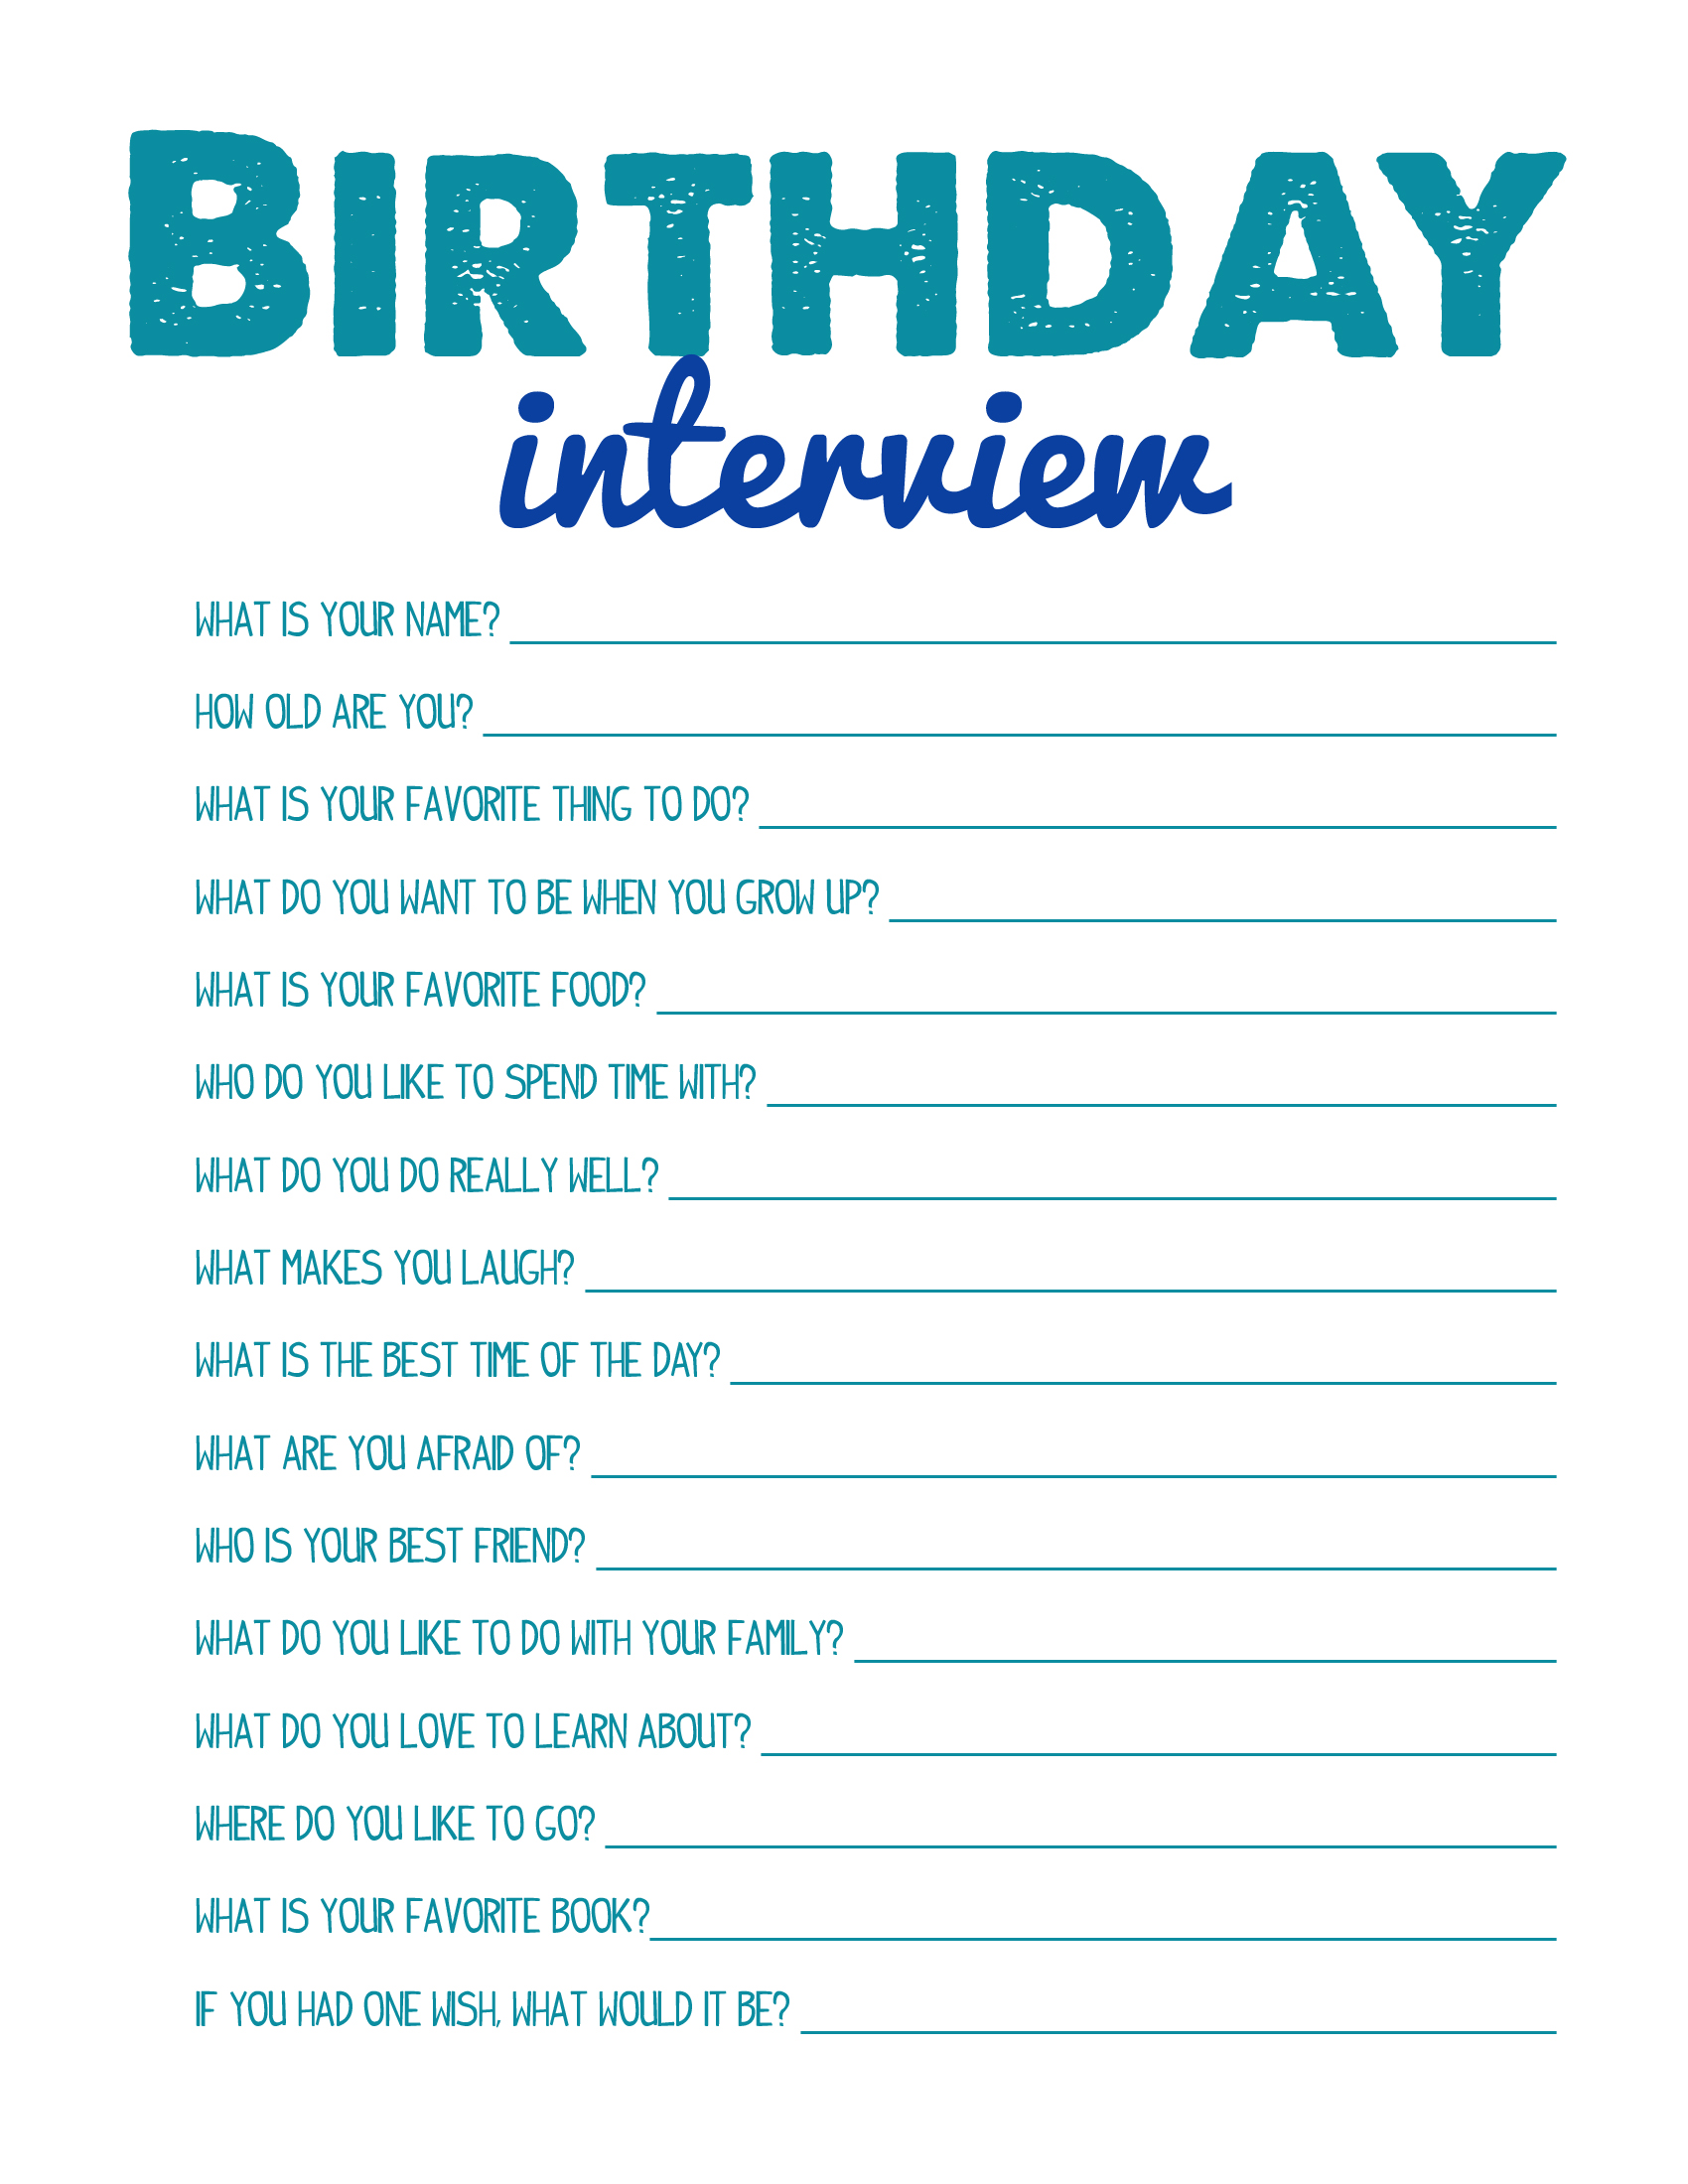 Birthday Interview Printable